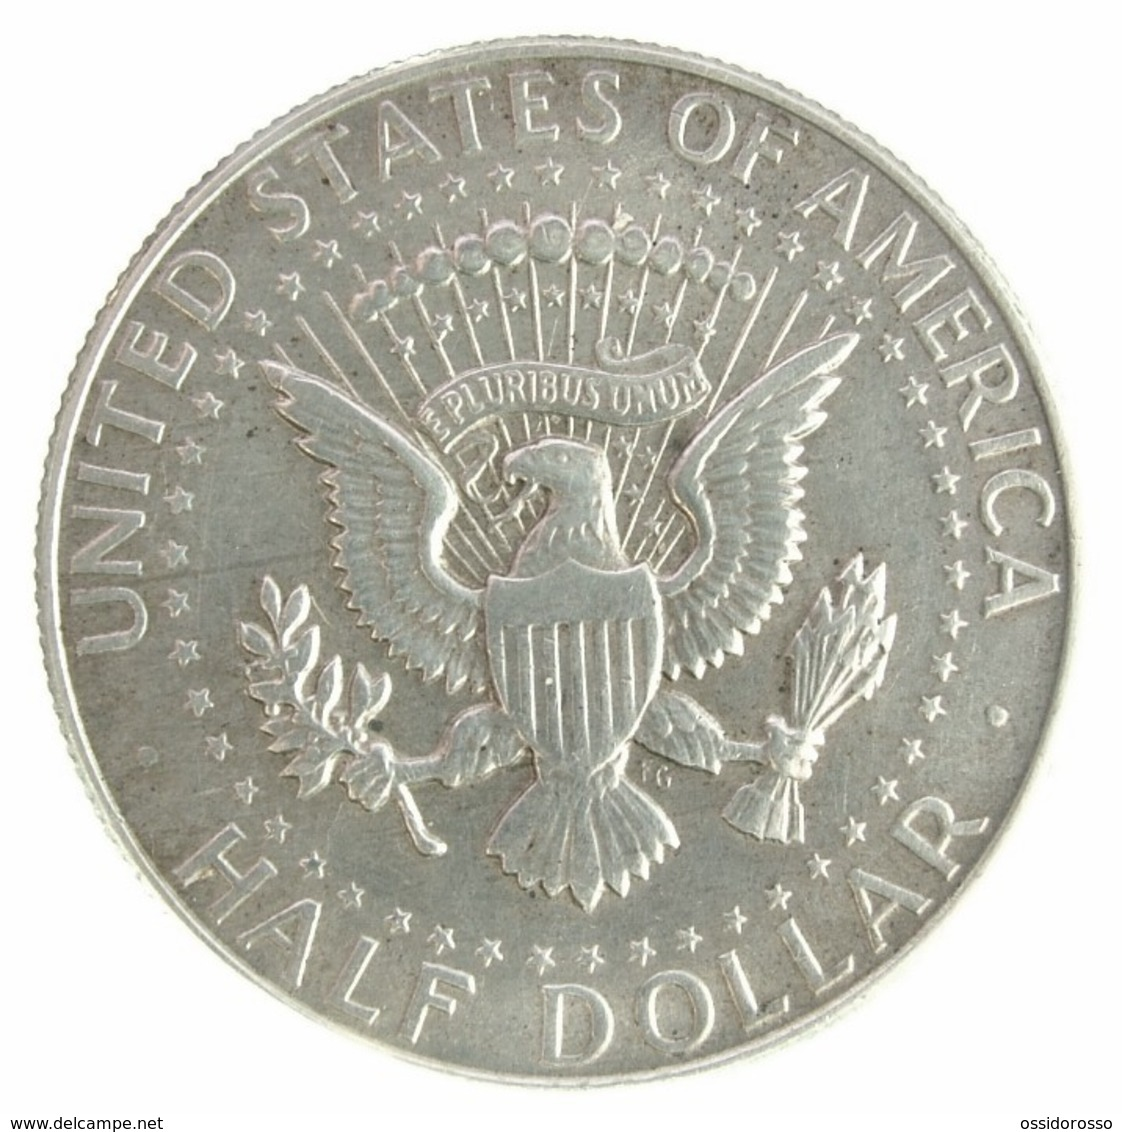 1967 - United States ½ Dollar - KM# 202 - VF - Federal Issues